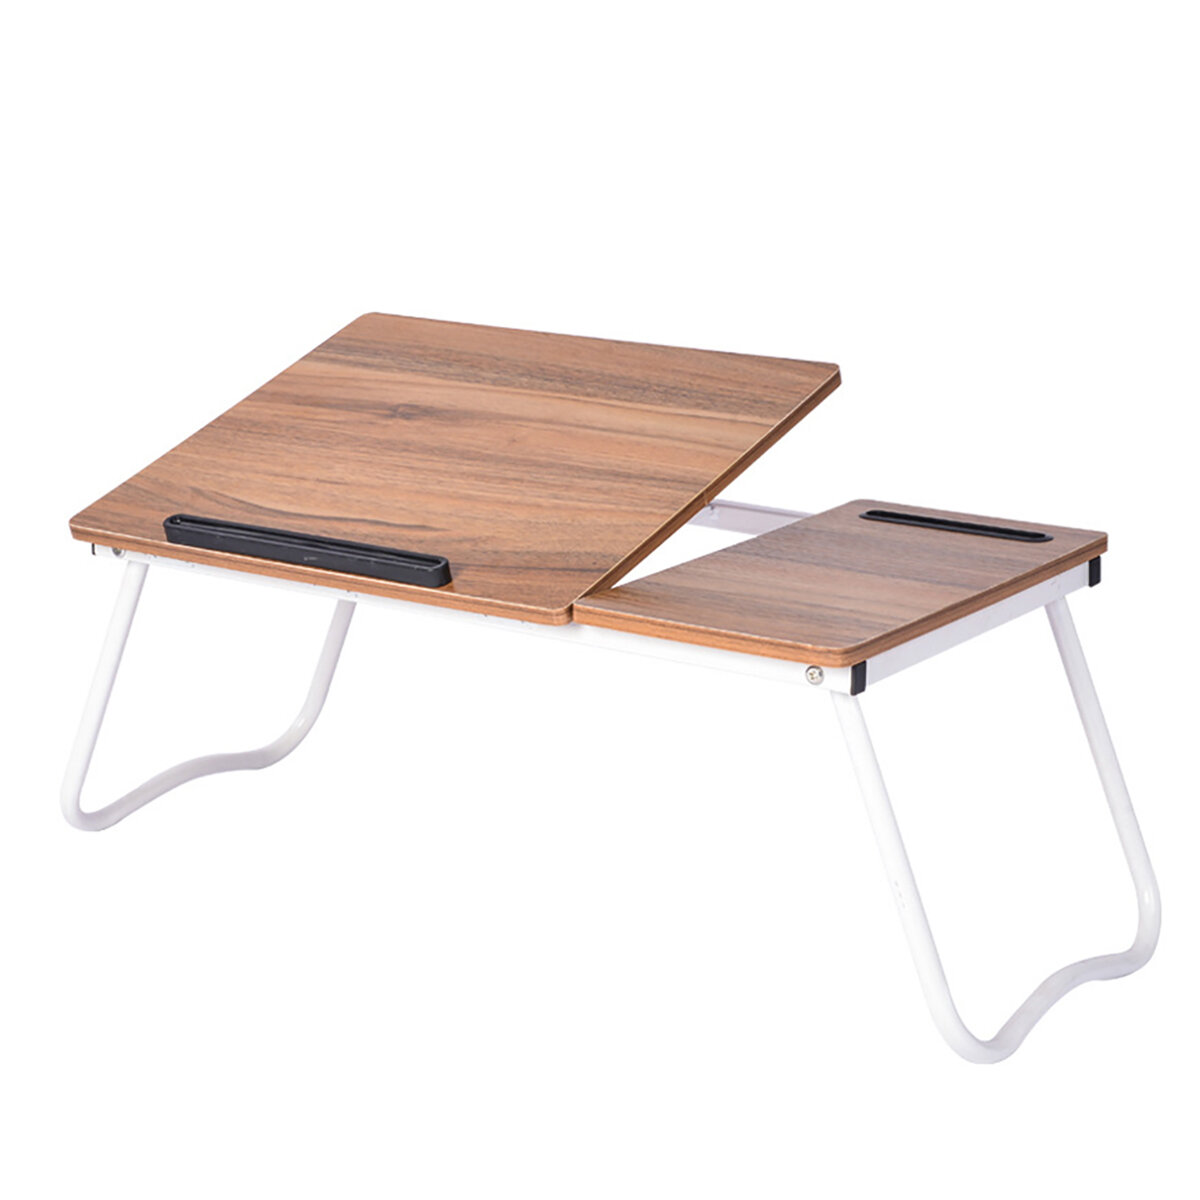 Picture of: Foldable Bed Tray 26 Inches Laptop Desk Adjustable Bed Table With Storage Slots Tablet Phone Holder For Home Office Studying Sale Banggood Com